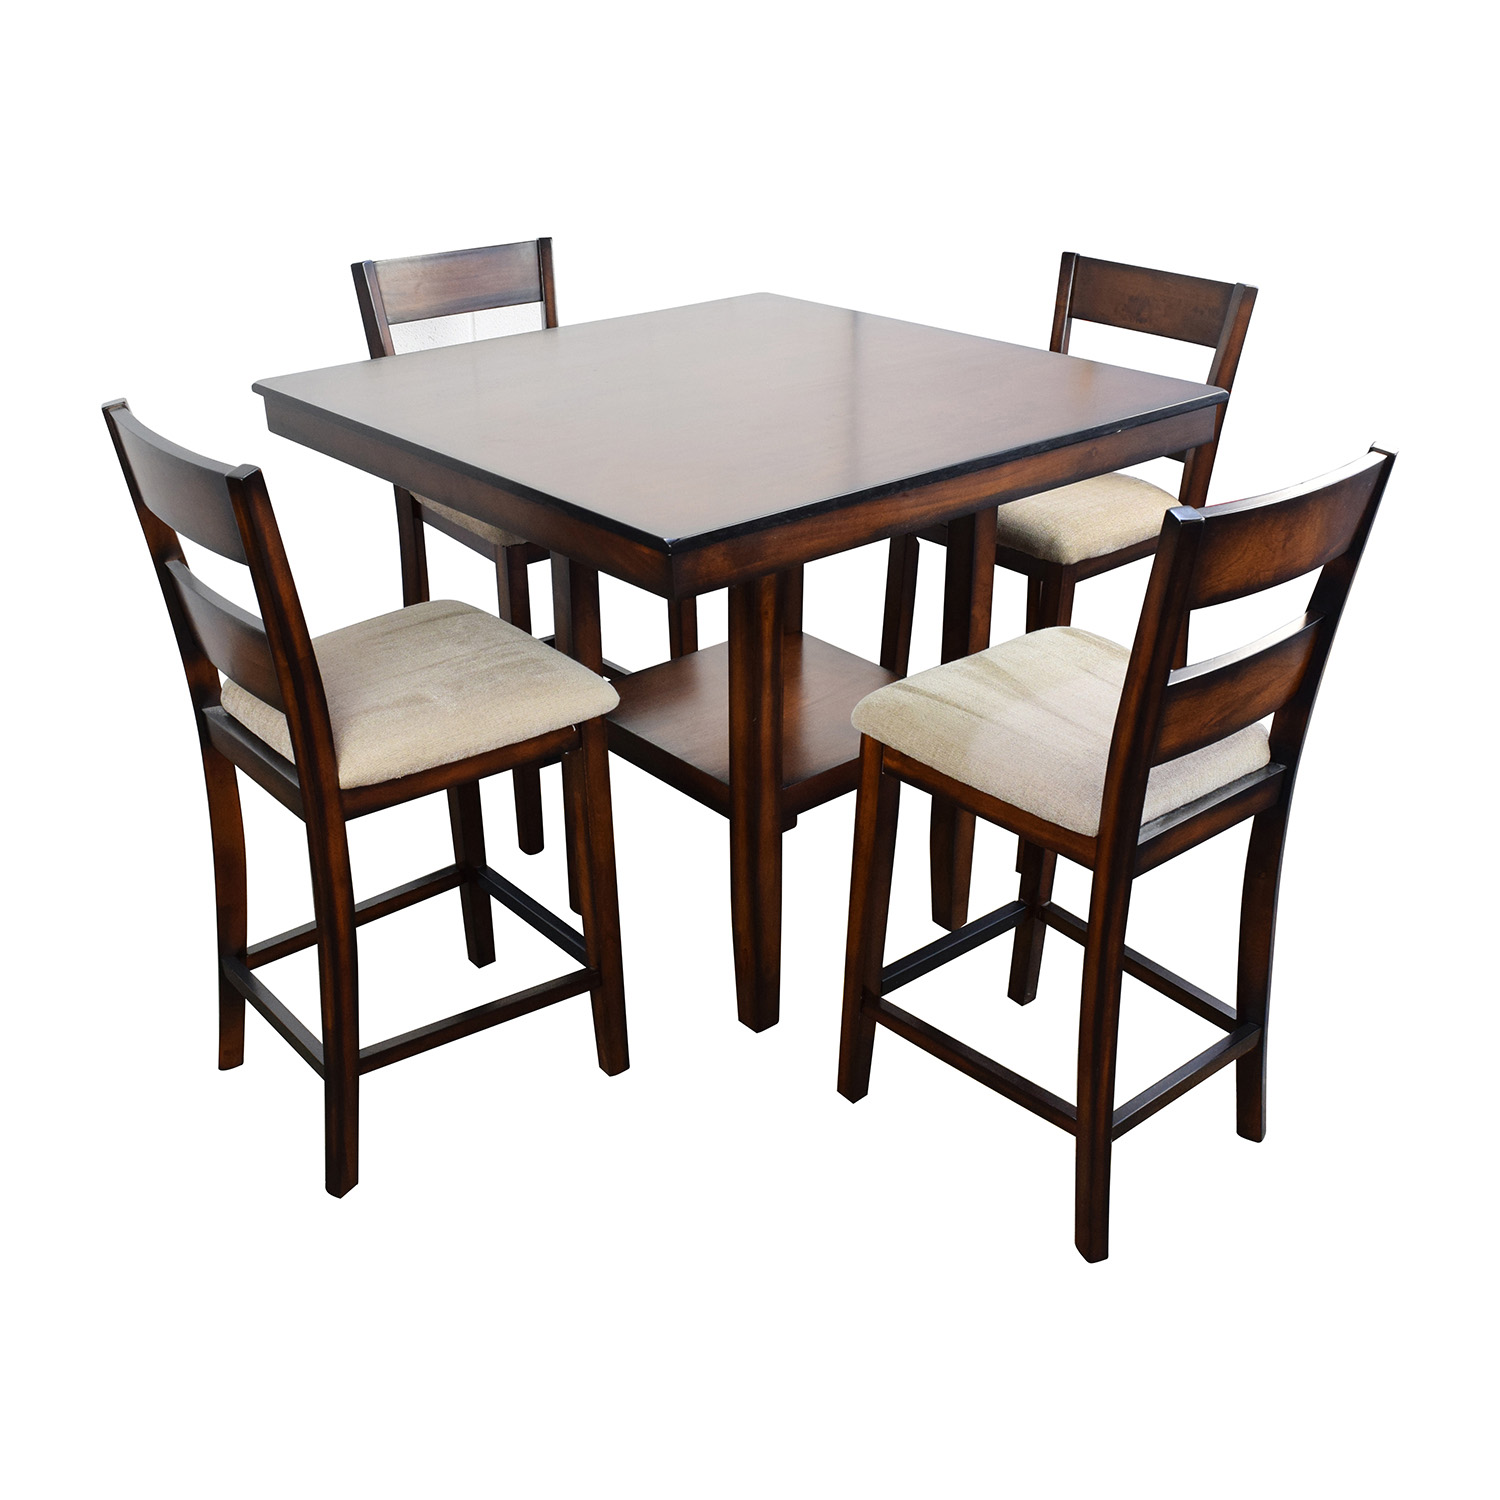 Super 66 Off Macys Macys Branton 5 Pc Counter Height Dining Set Tables Forskolin Free Trial Chair Design Images Forskolin Free Trialorg